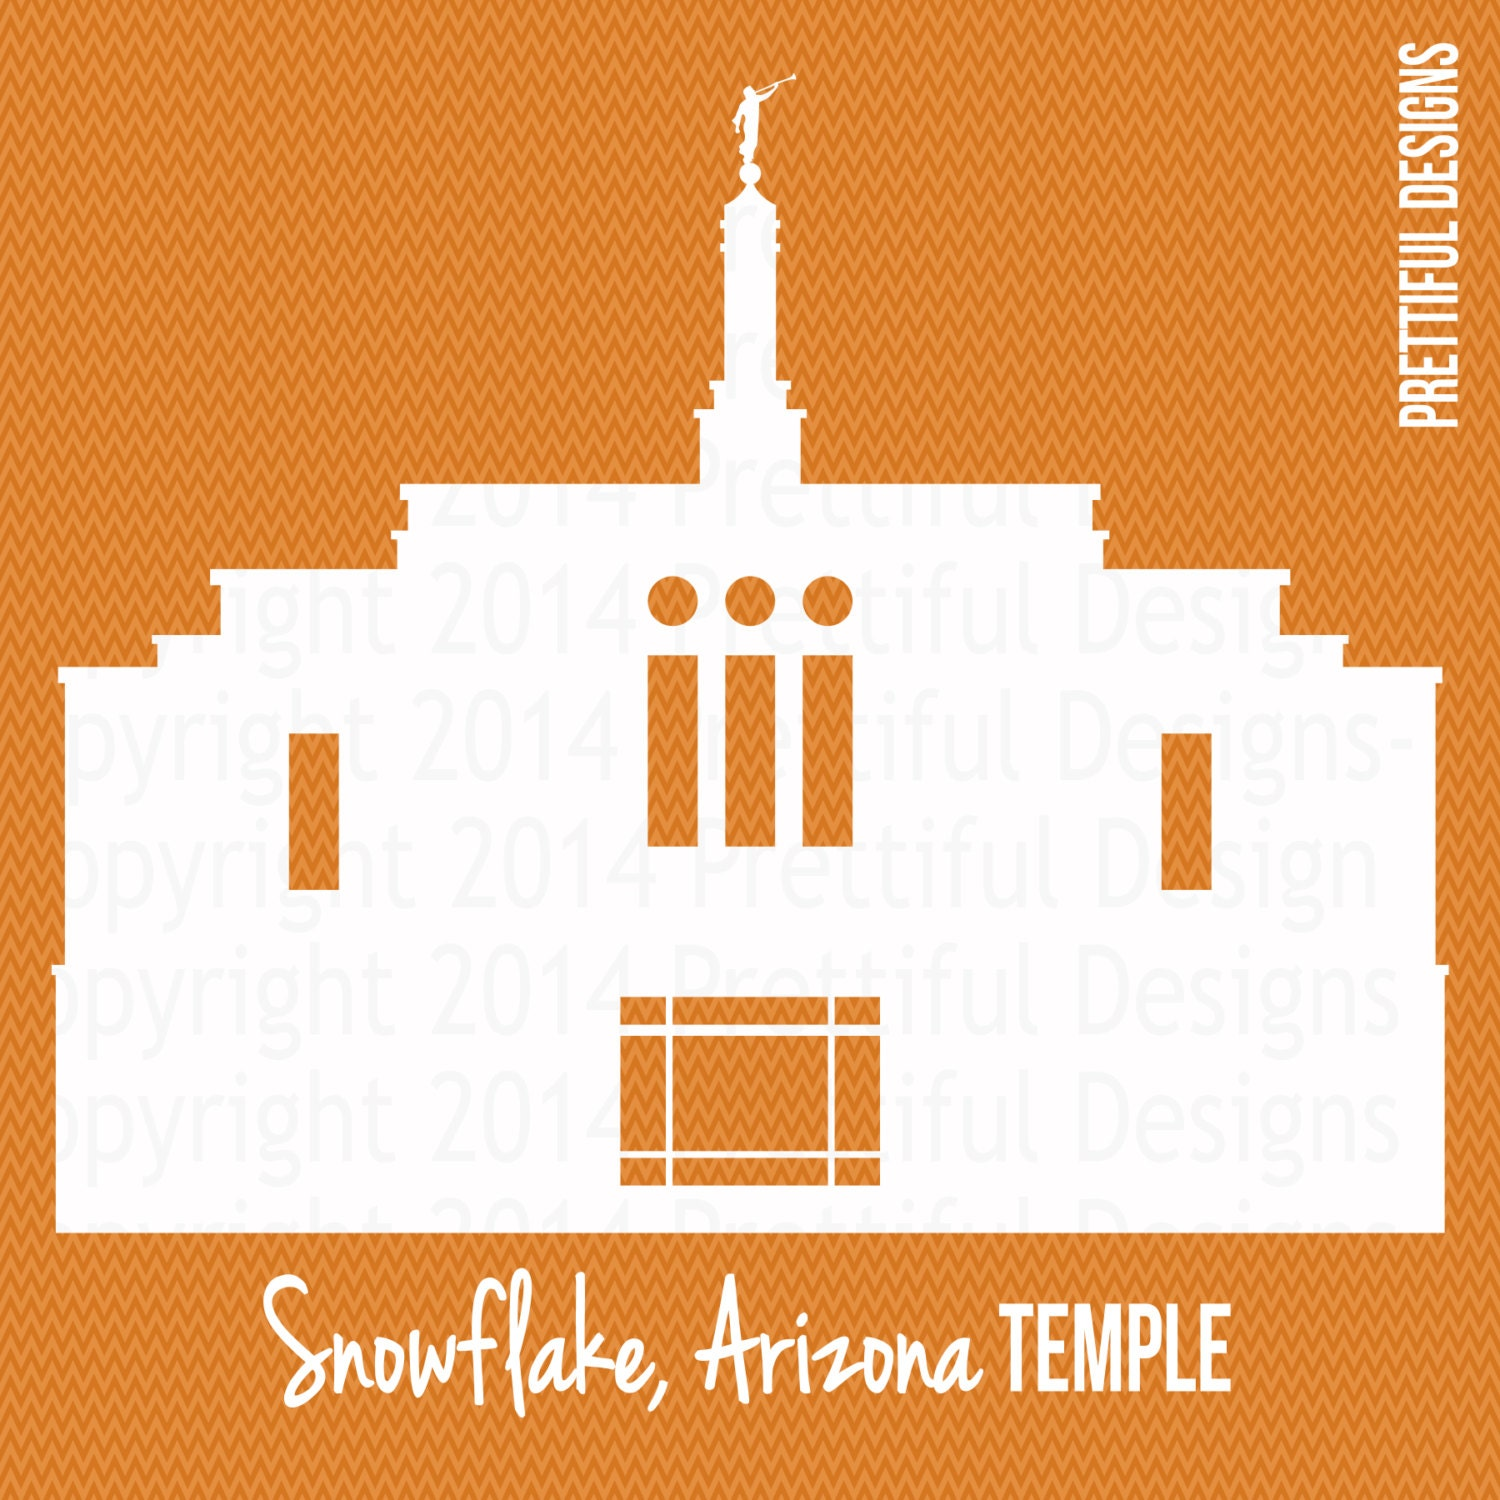 snowflake arizona temple silhouette lds mormon clip art png rh etsy com lds clipart temple family lds clipart temple family